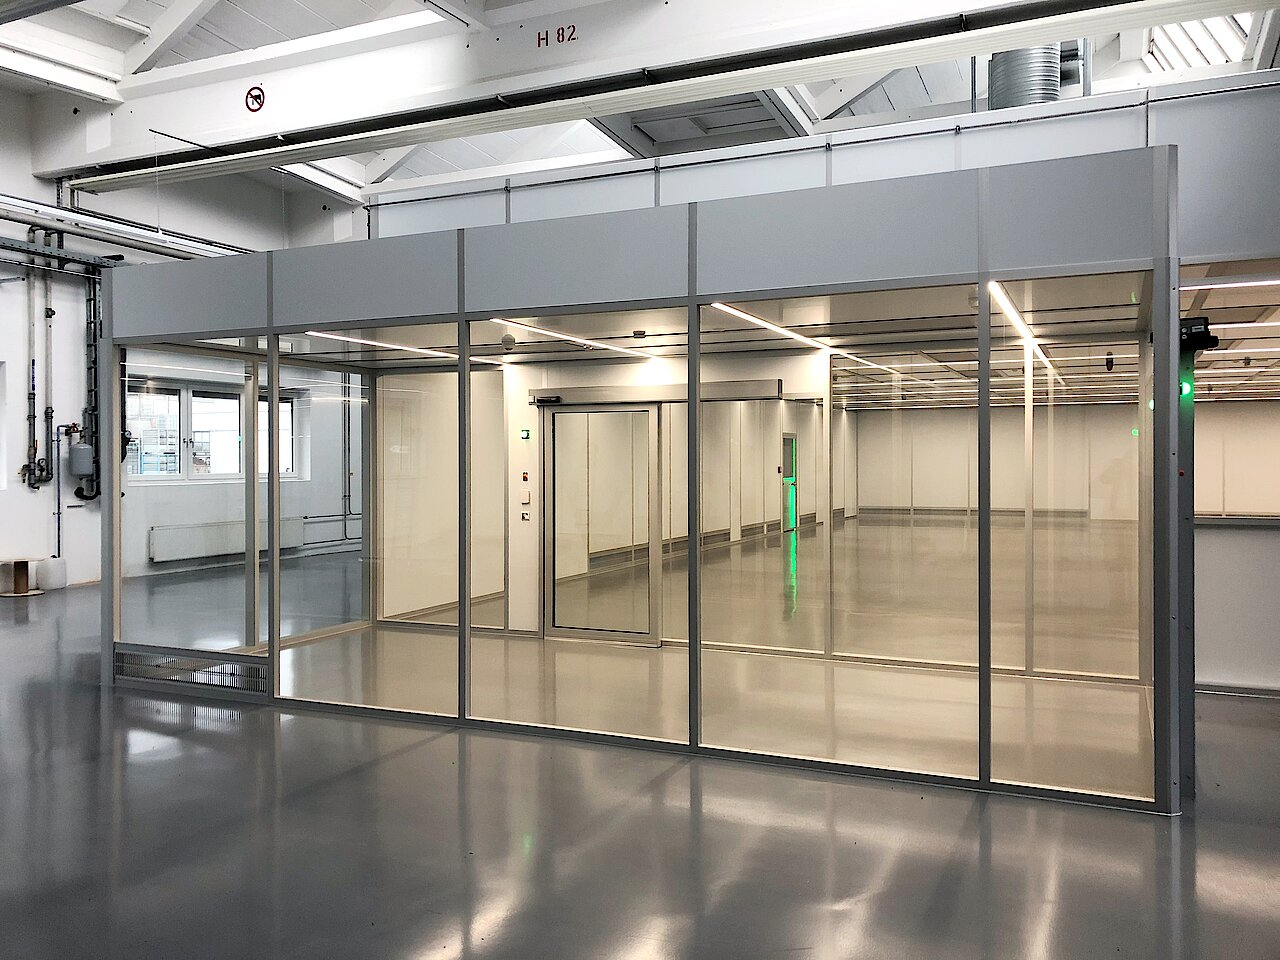 Cleanroom for surface manufacturing, ISO 7